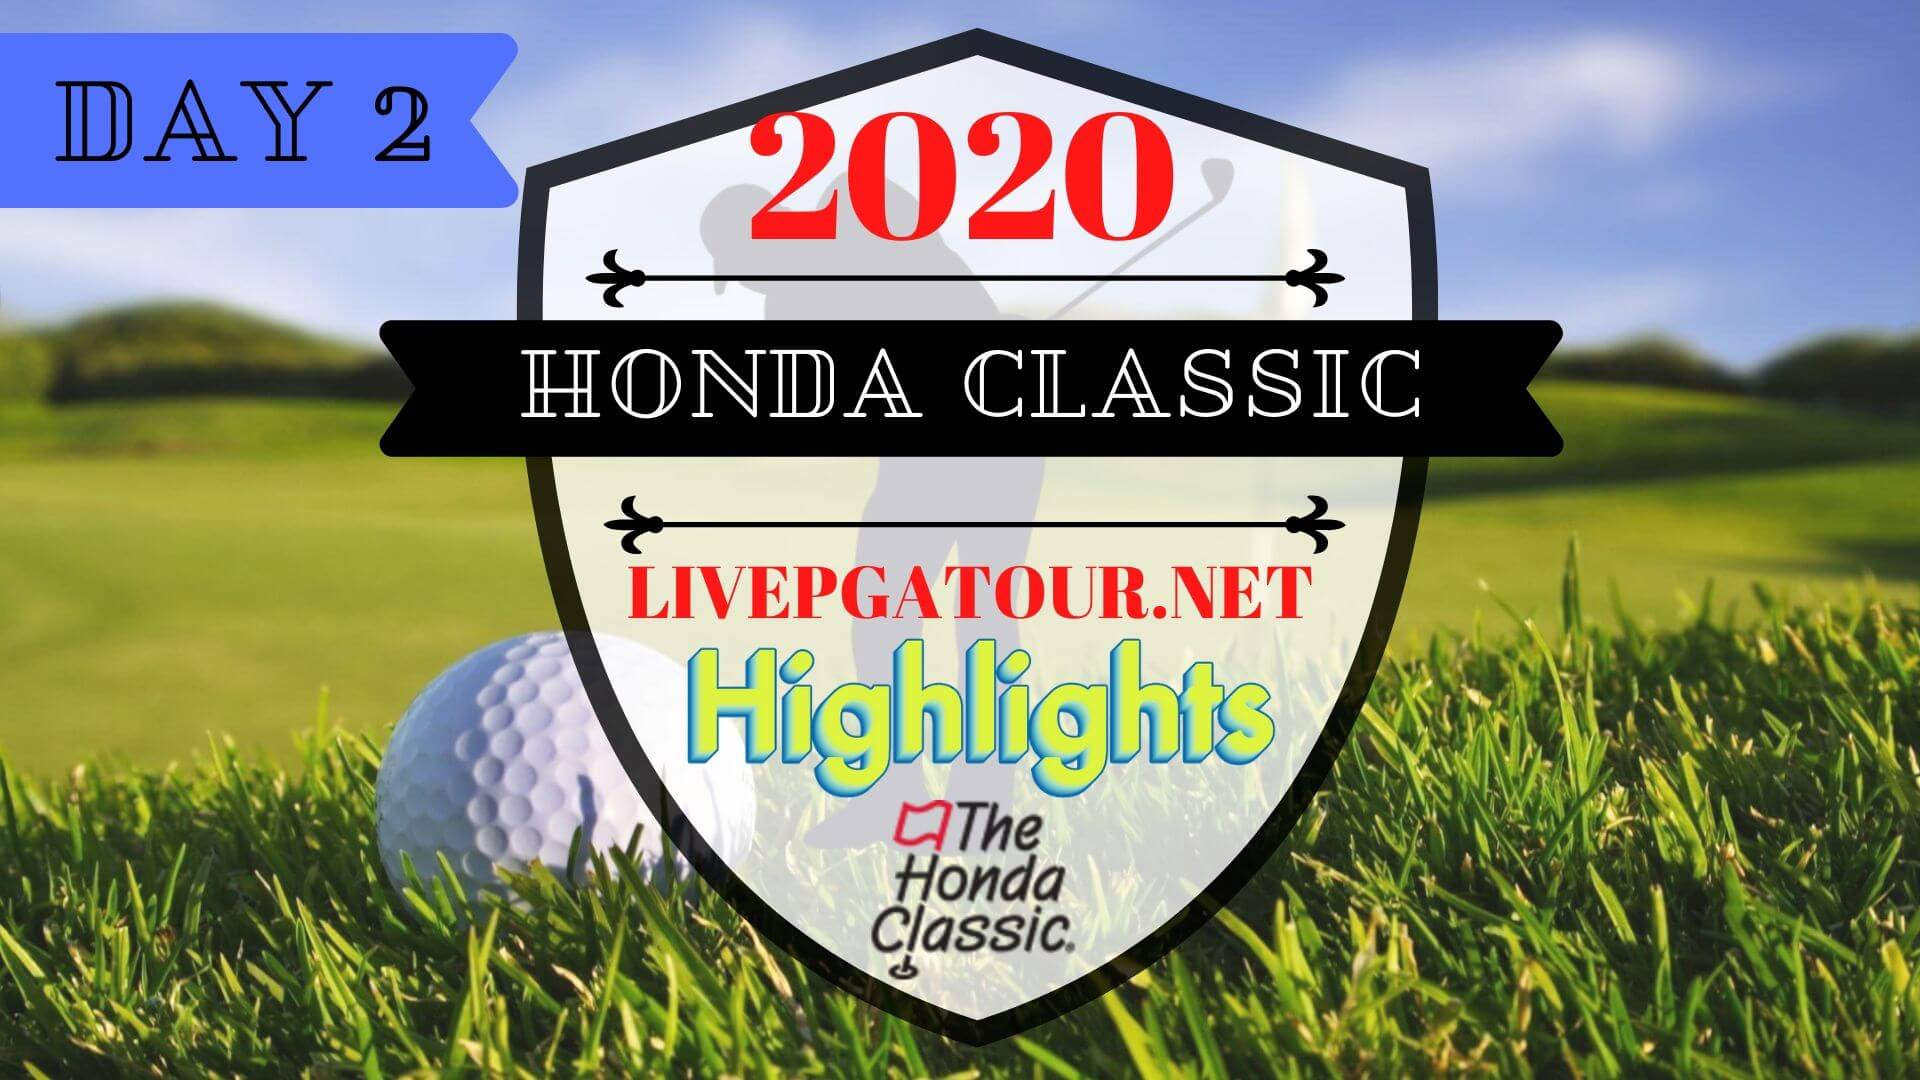 The Honda Classic Highlights 2020 Day 2